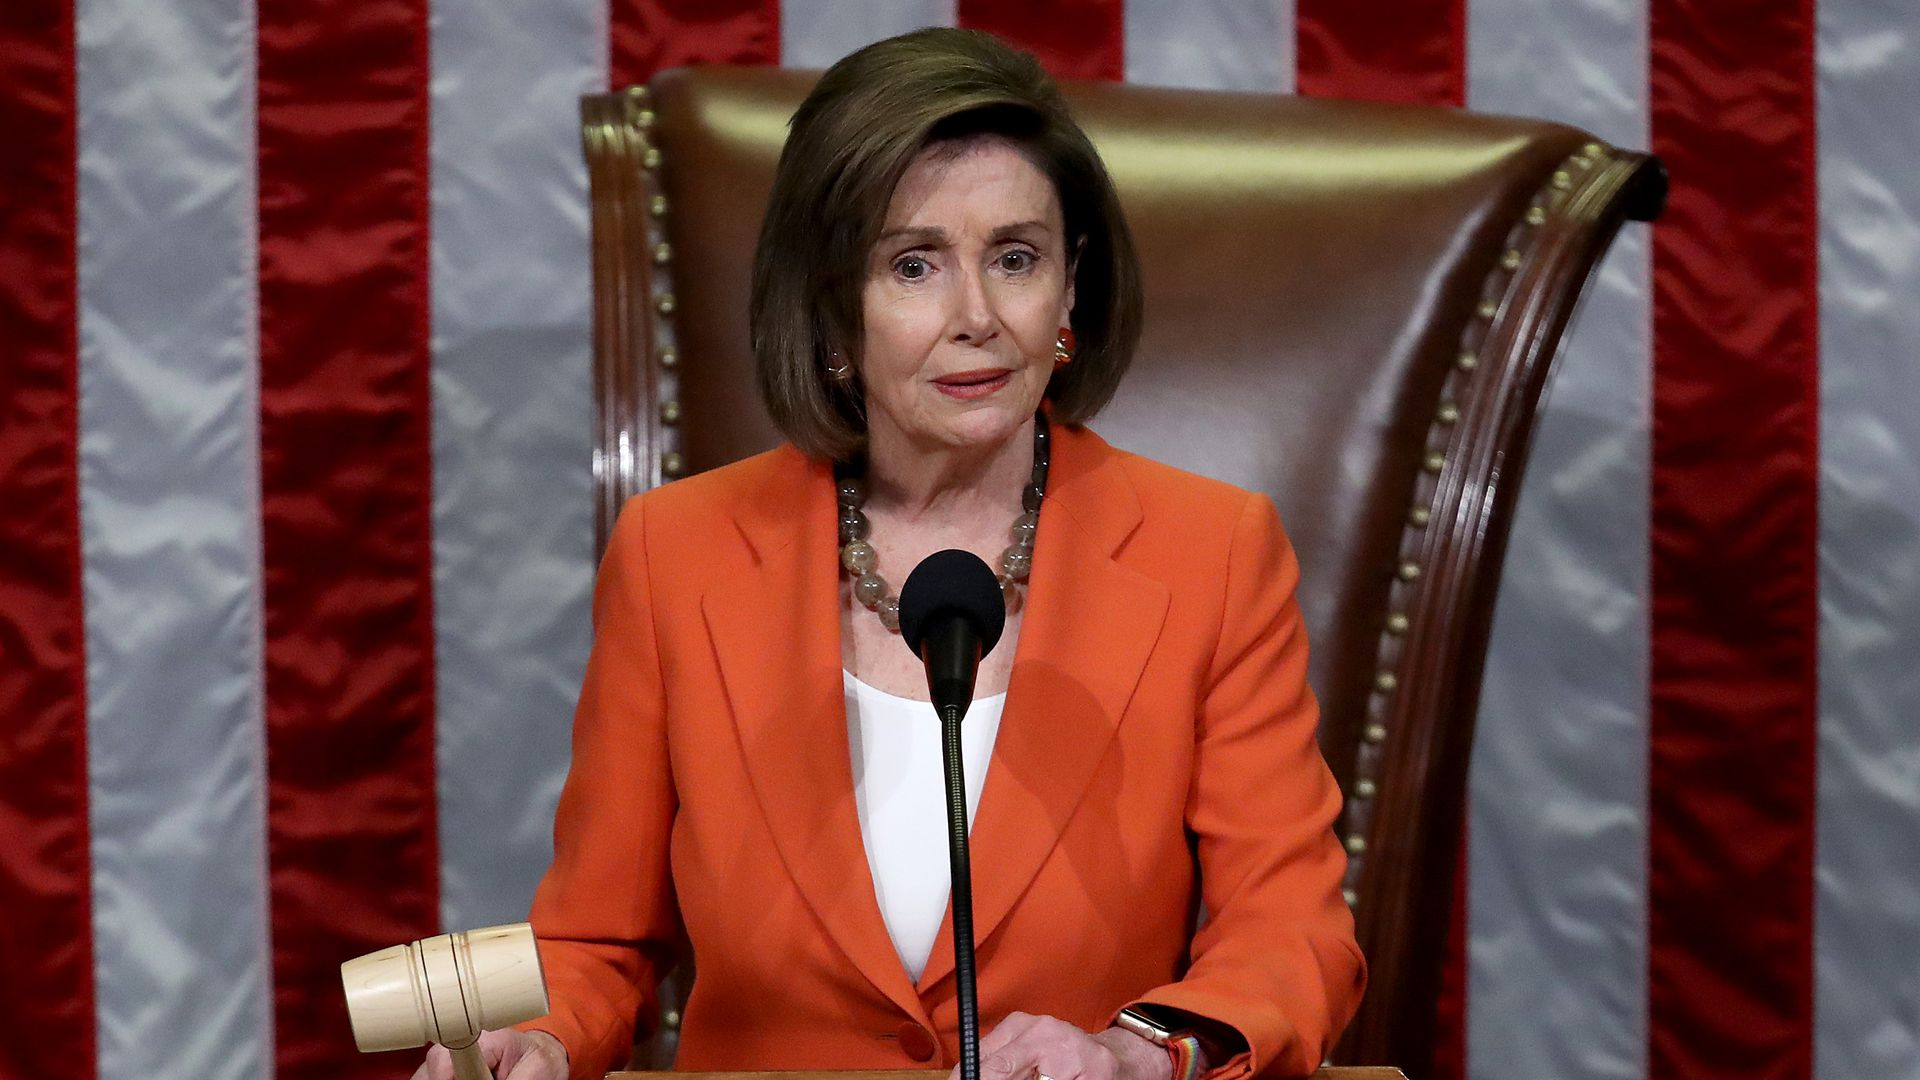 Nancy Pelosi holds the gavel at the House.